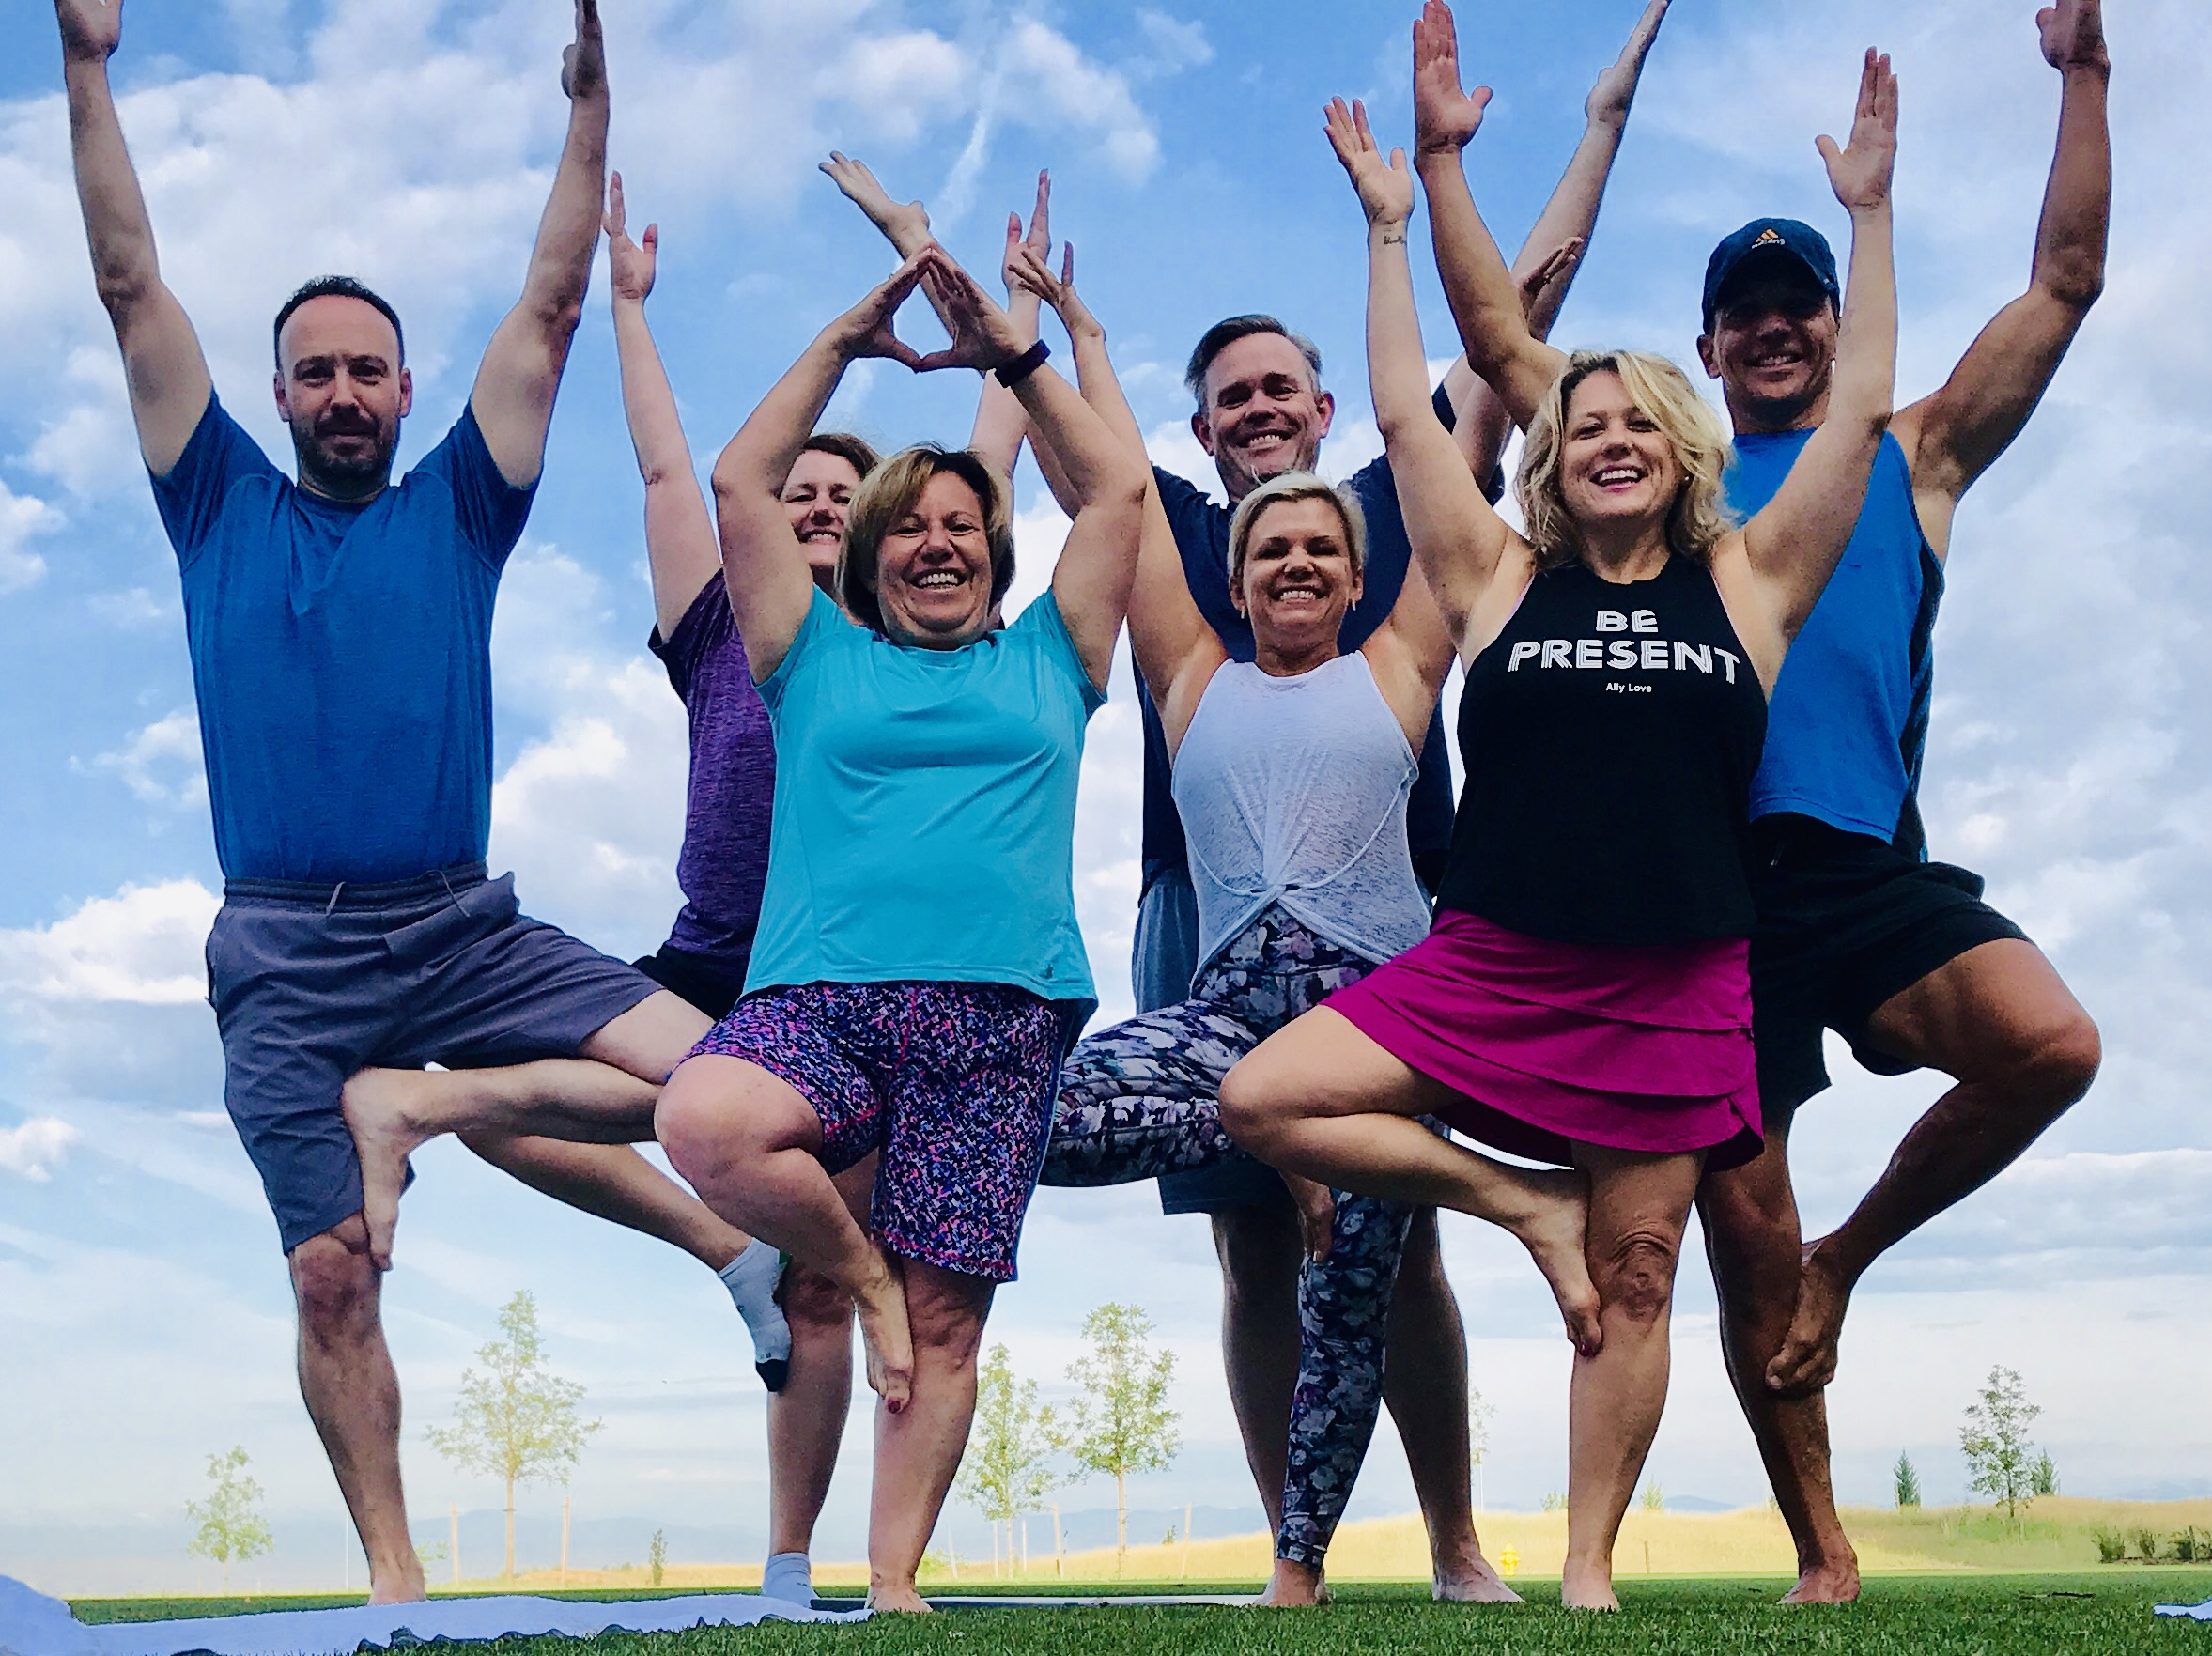 Group yoga session let by Lesley Henry at the Gaylord Resort in Colorado.